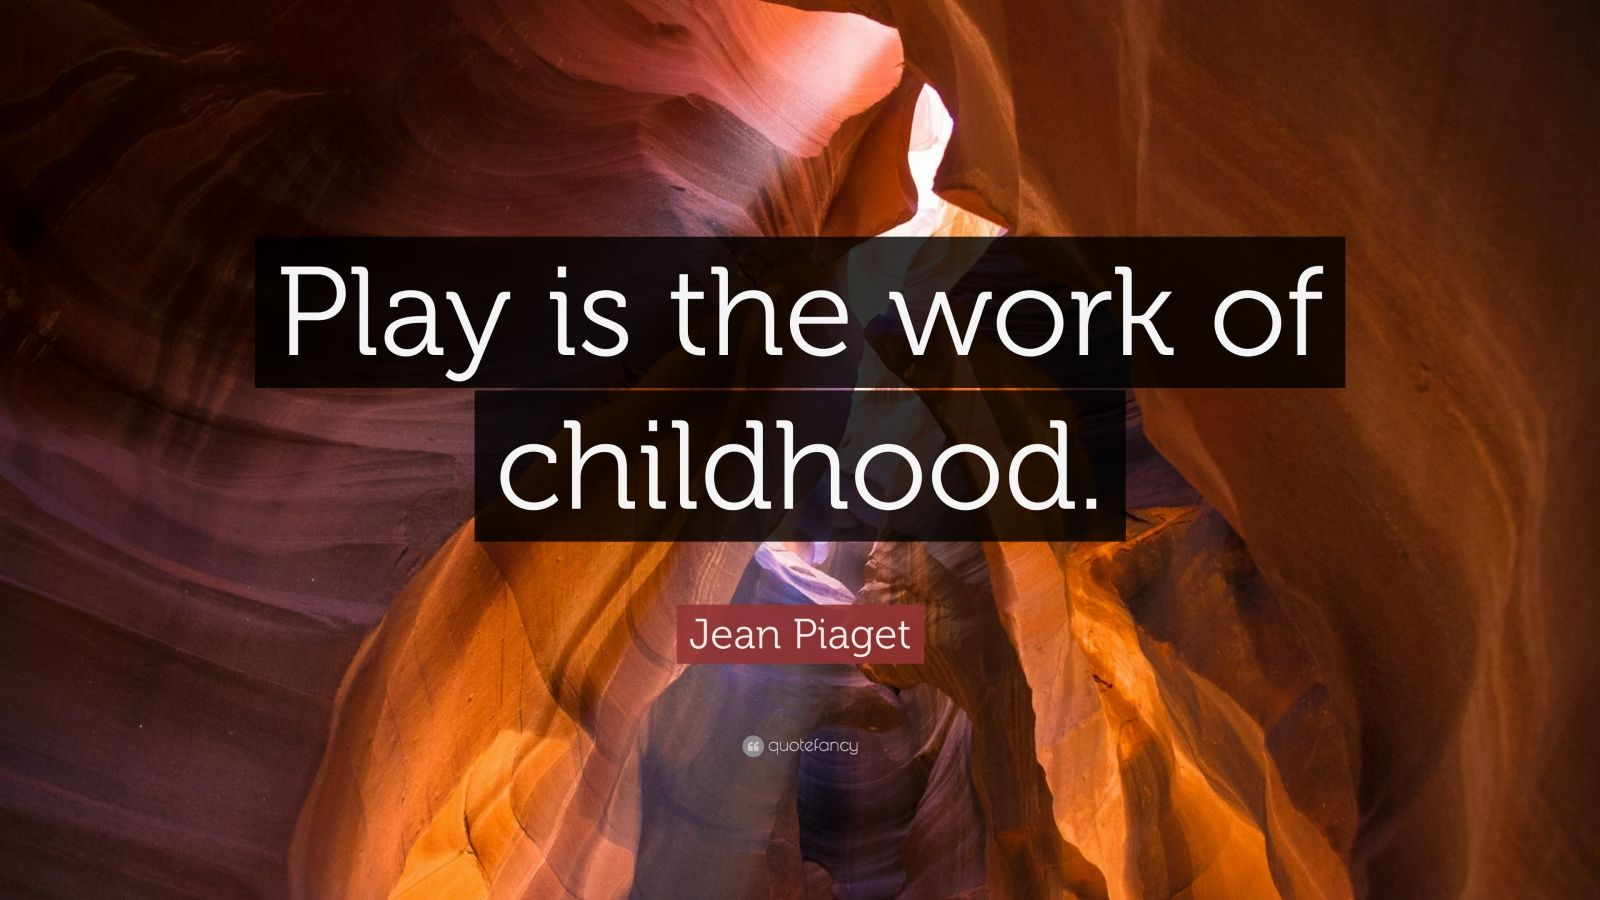 Steve Jobs Wallpaper Quotes Jean Piaget Quote Play Is The Work Of Childhood 12